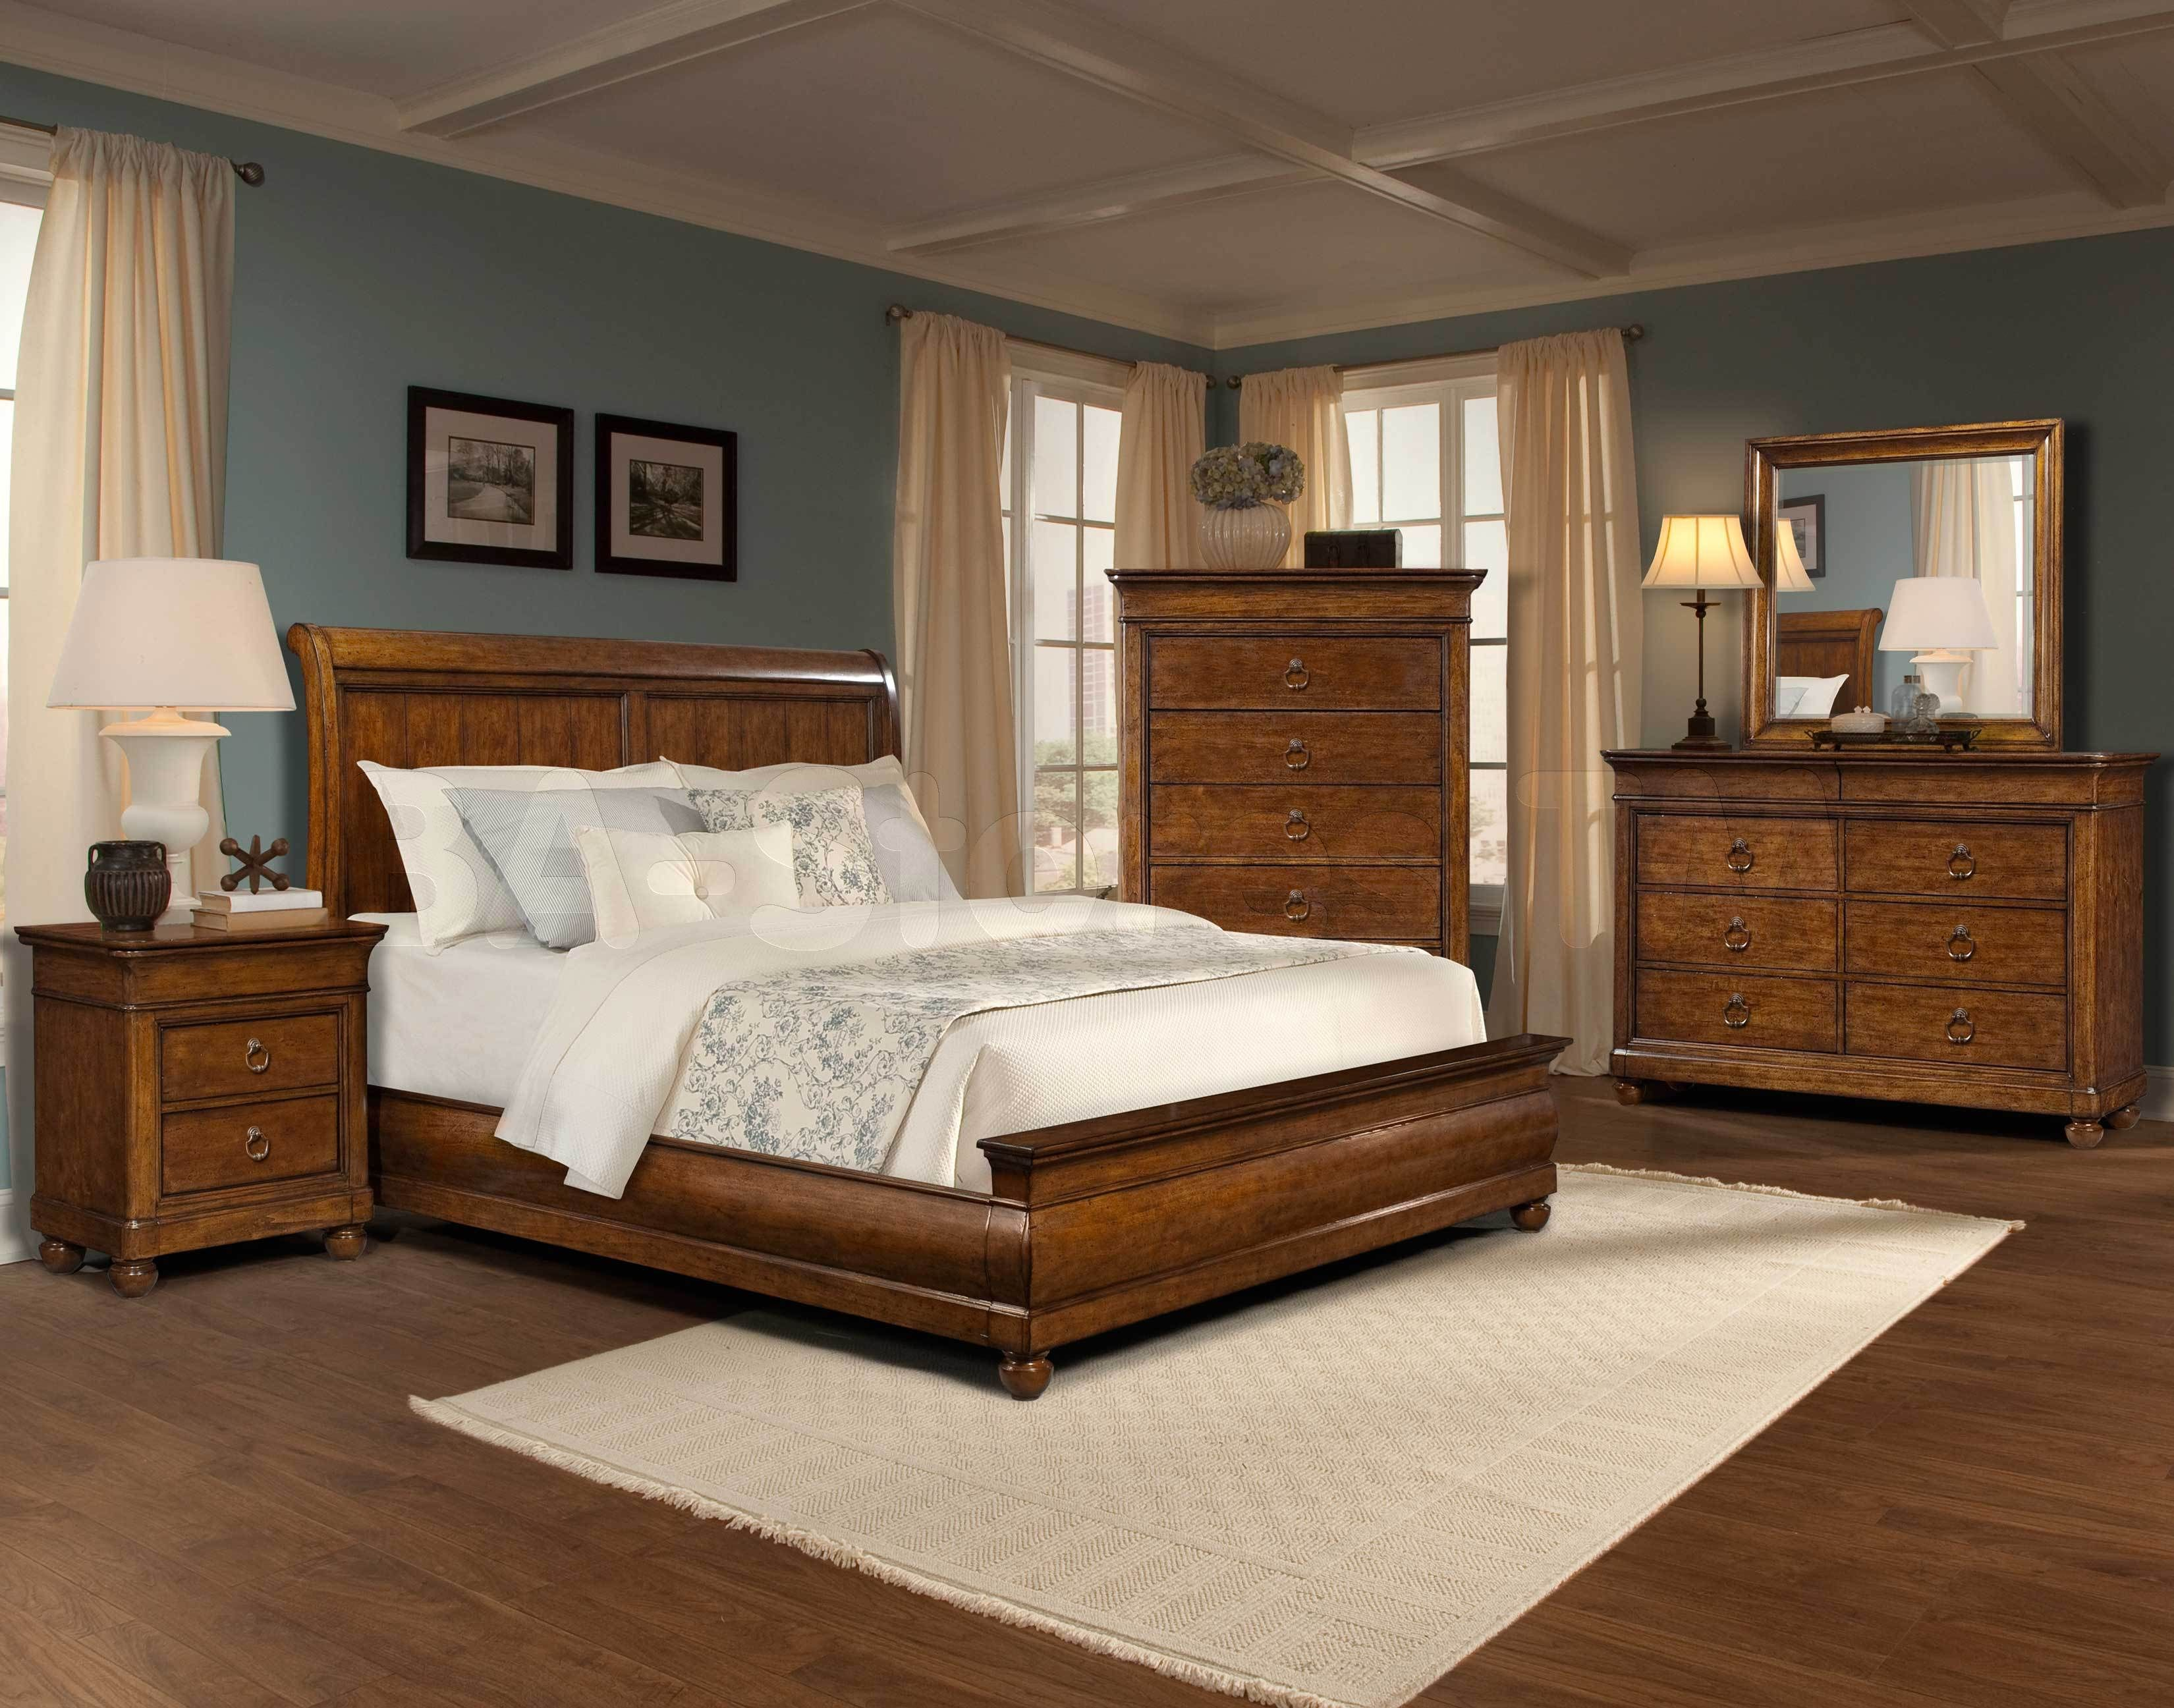 Blue And Brown Bedroom Ideas  Bedroom Stylish Nightstand Ideas Interesting Wood Bedroom Sets Design Decoration